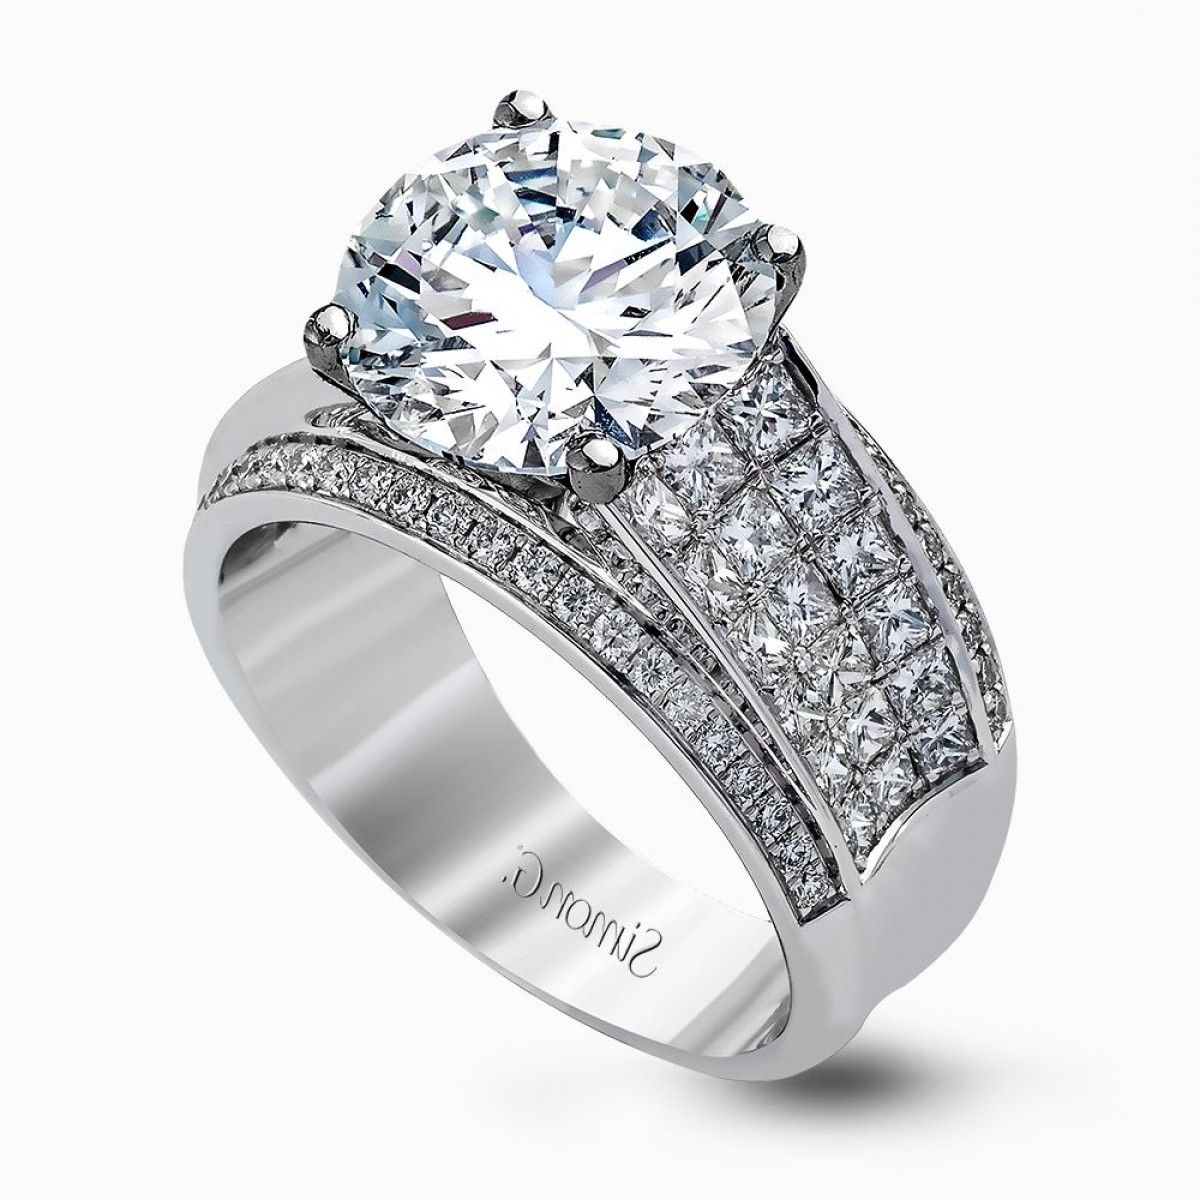 Zales Wedding Rings Clearance Wedding Ring Clearance Engagement Rings Zales Clearance